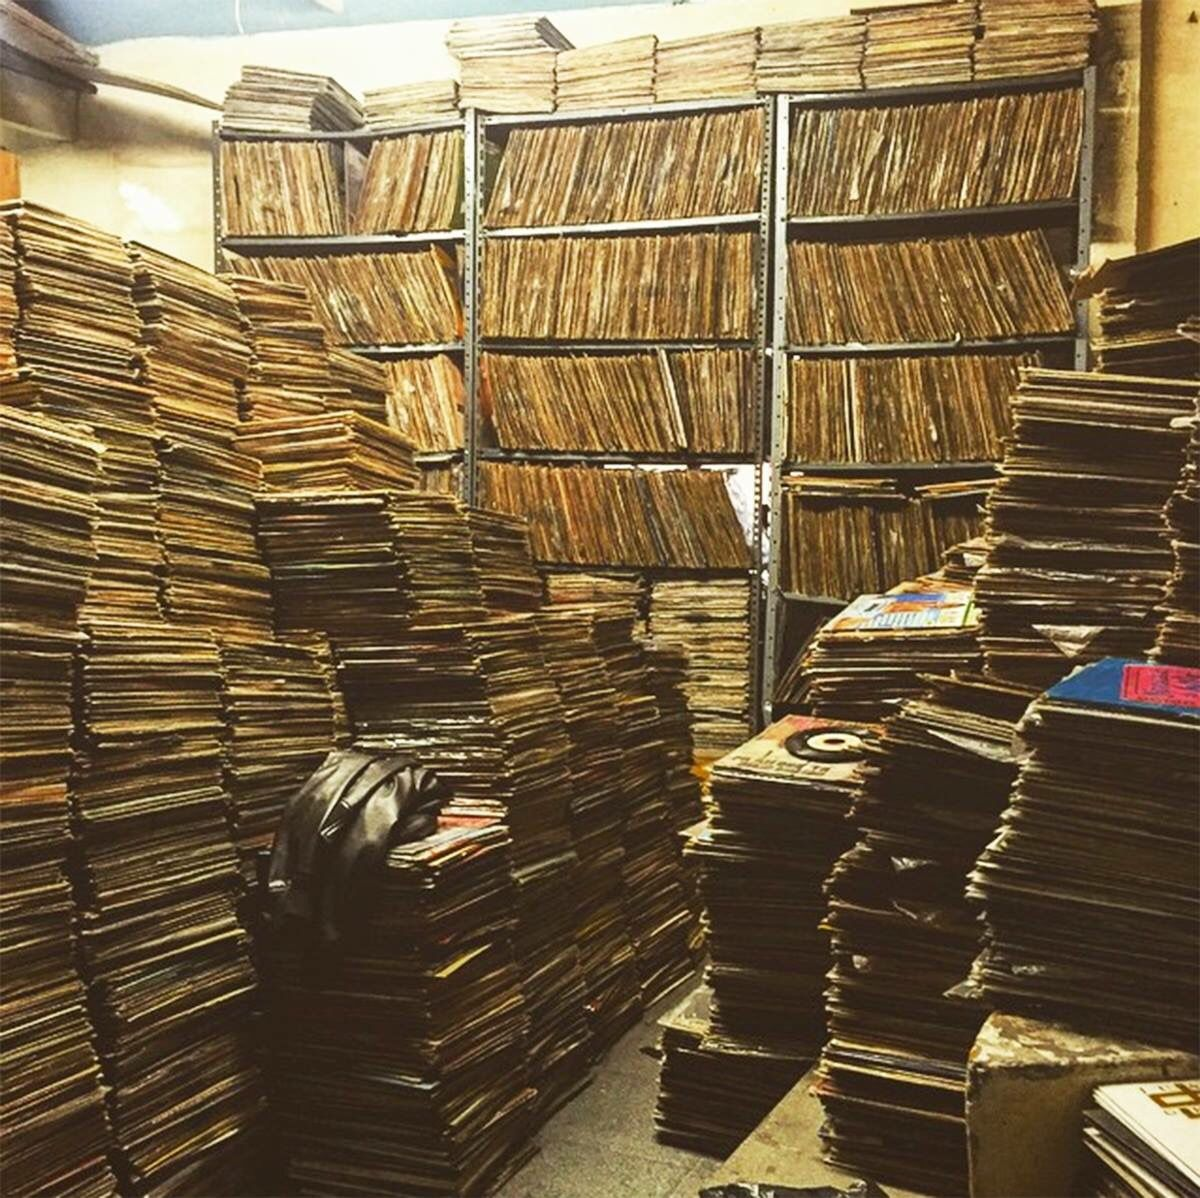 Stacks Of Wax Lots Of Records Pinterest Wax Record